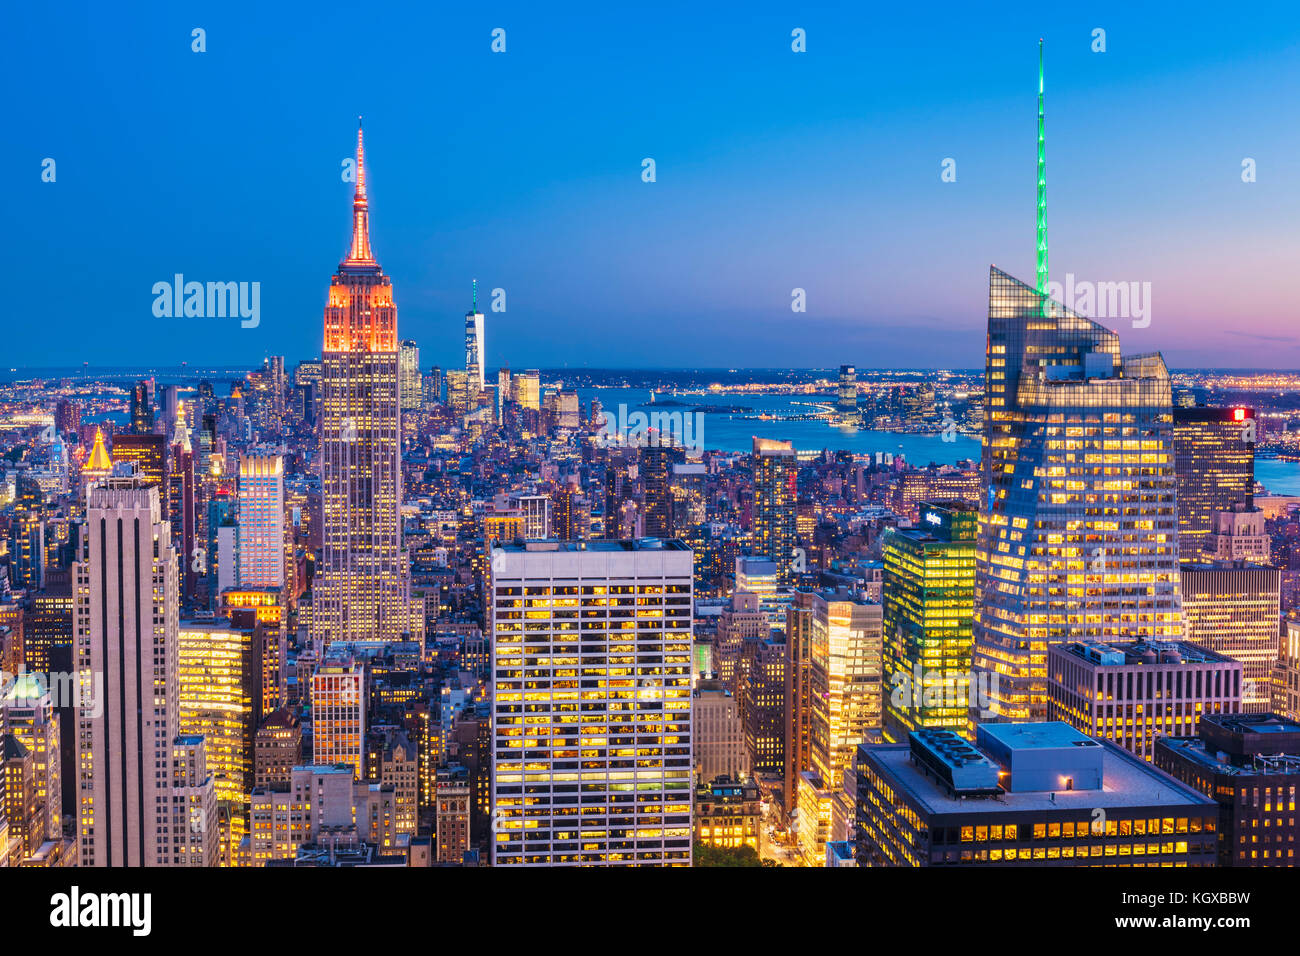 New York Skyline, manhattan skyline, Empire State Building, at night, New York City, United States of America, North - Stock Image